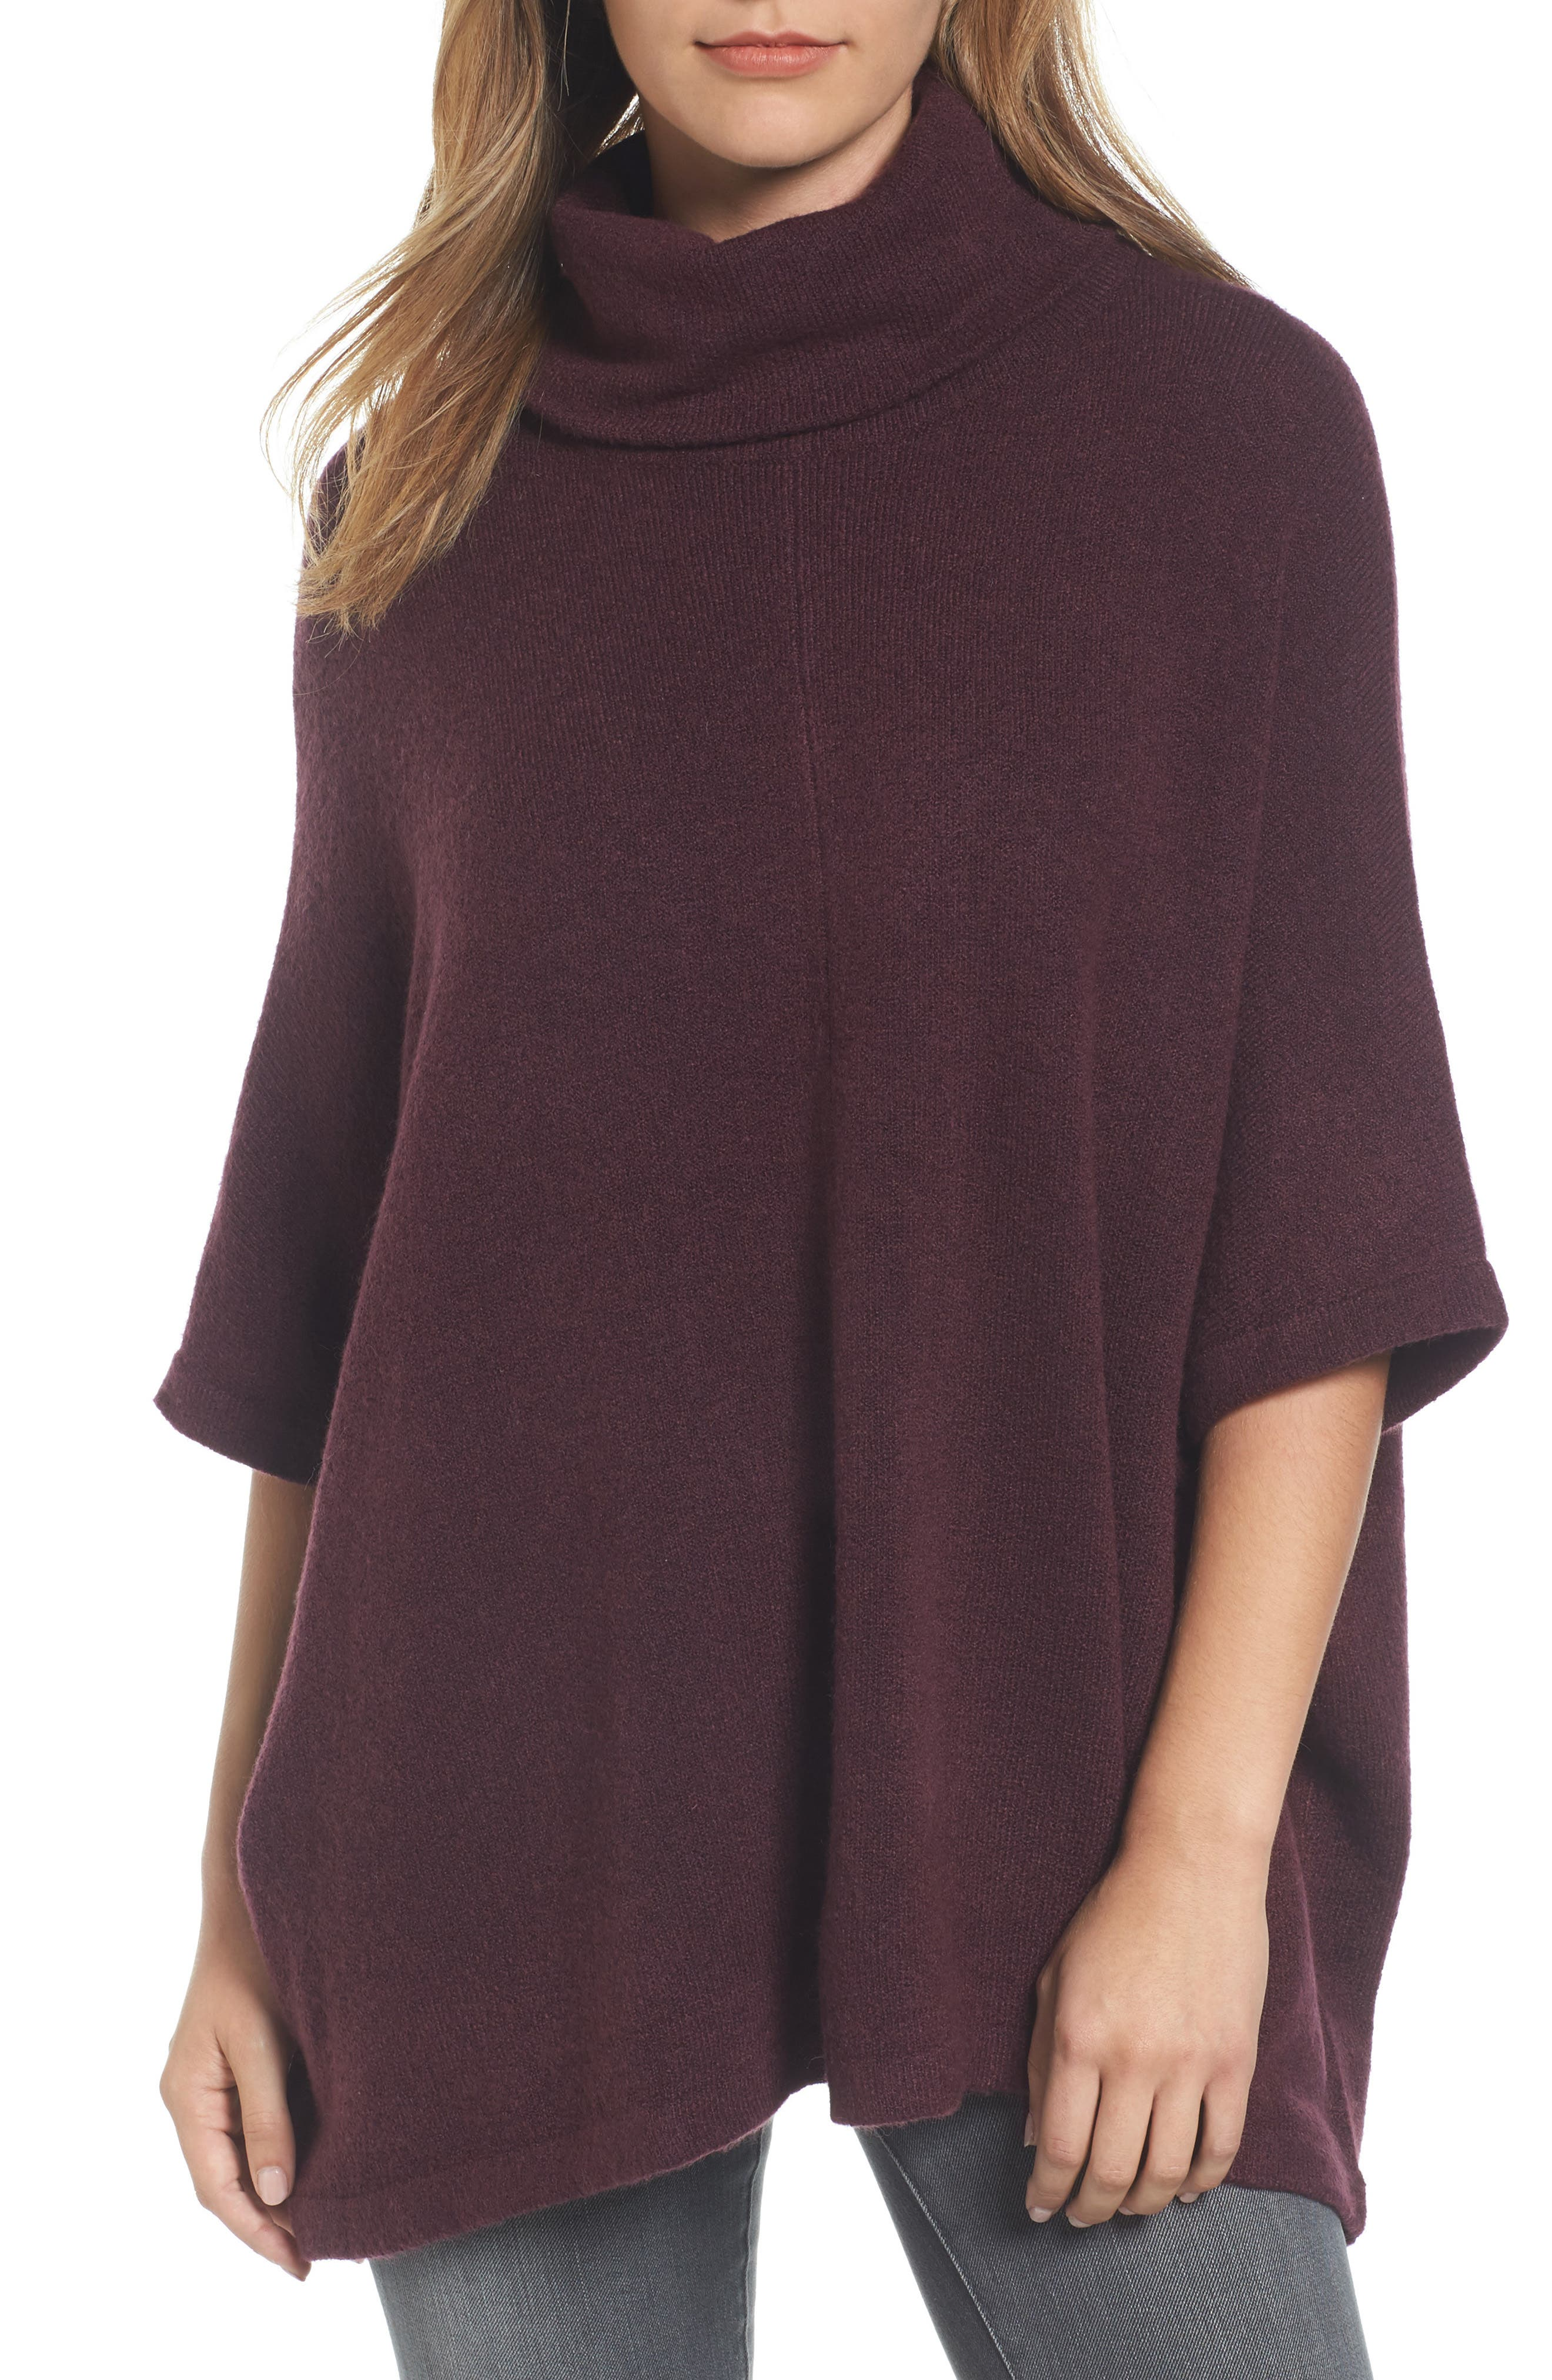 Alternate Image 1 Selected - Caslon® Cowl Neck Sweater Poncho (Regular & Petite)